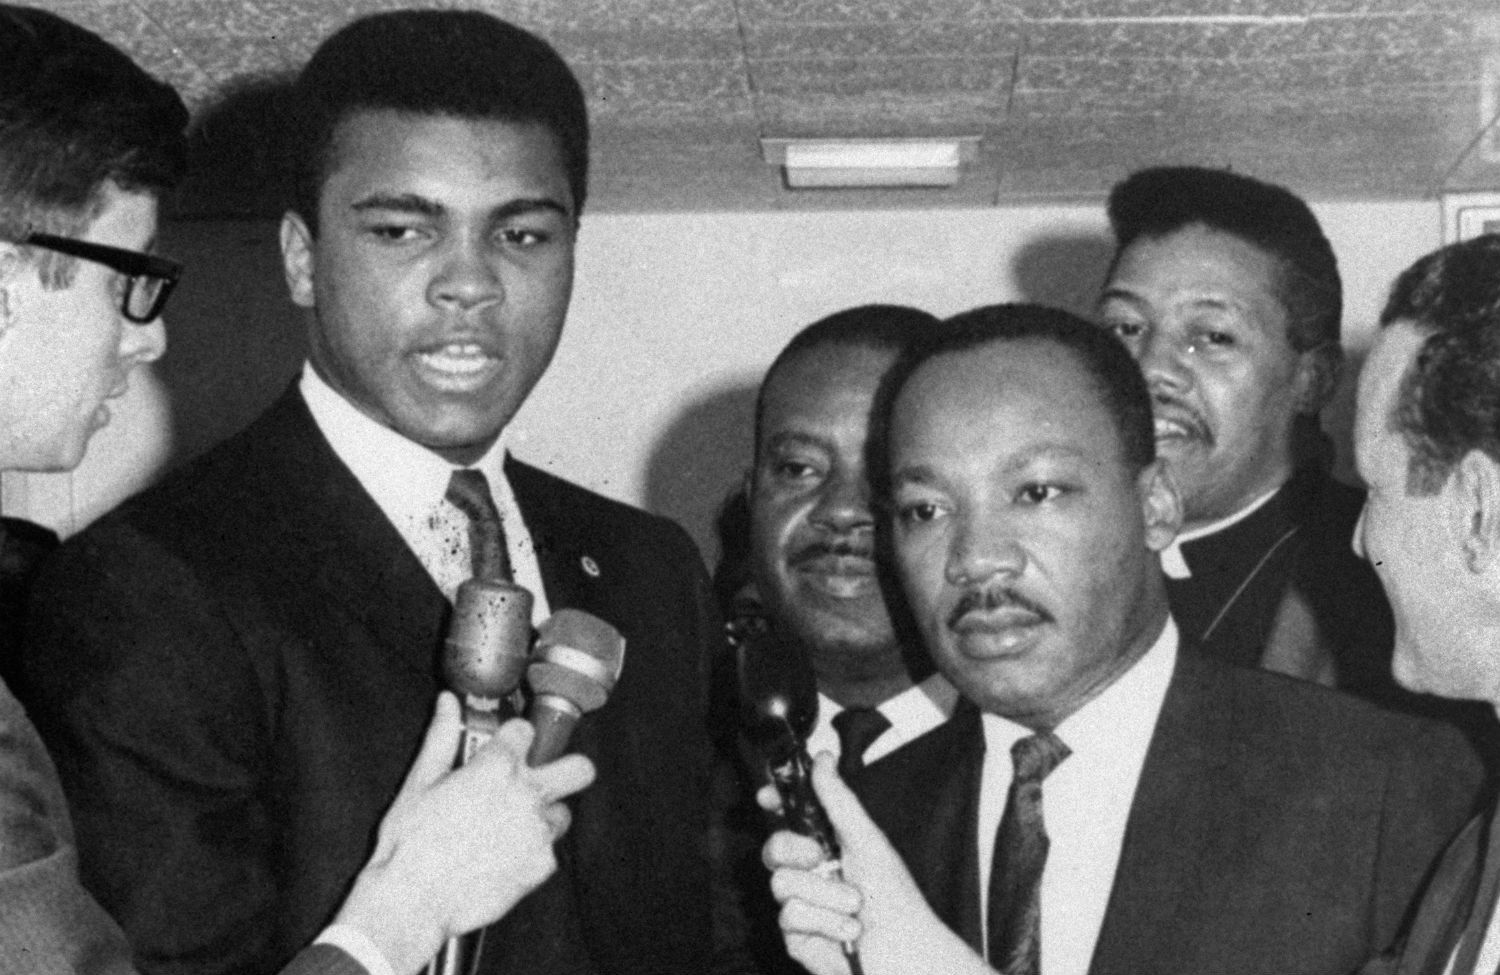 muhammad ali Luther King